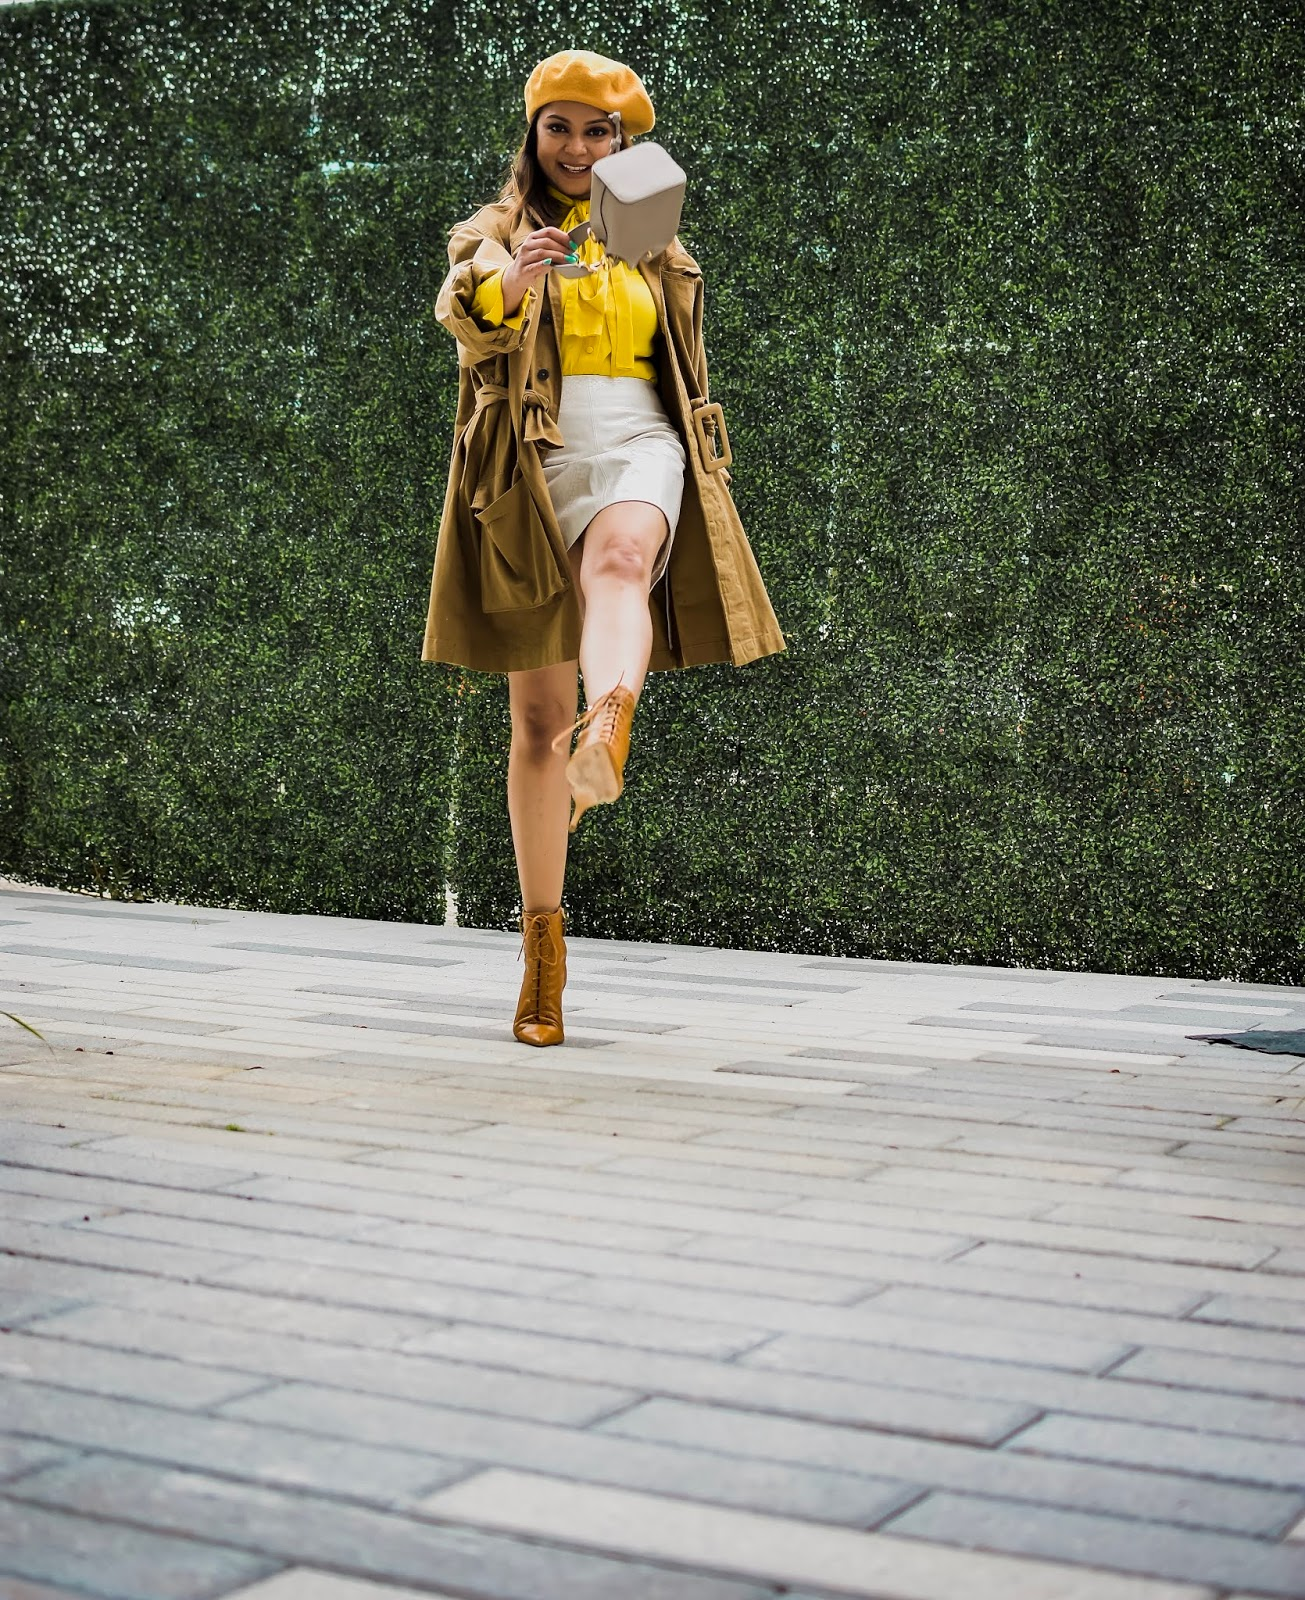 fall fashion, how to style a mini leather skirt, white leather skirt, boxy H&M jacket, pointy toe kitten booties, yellow beret, parisian style, fend bucket bag, yellow pussy bow blouse, myriad musings, saumya shiohare